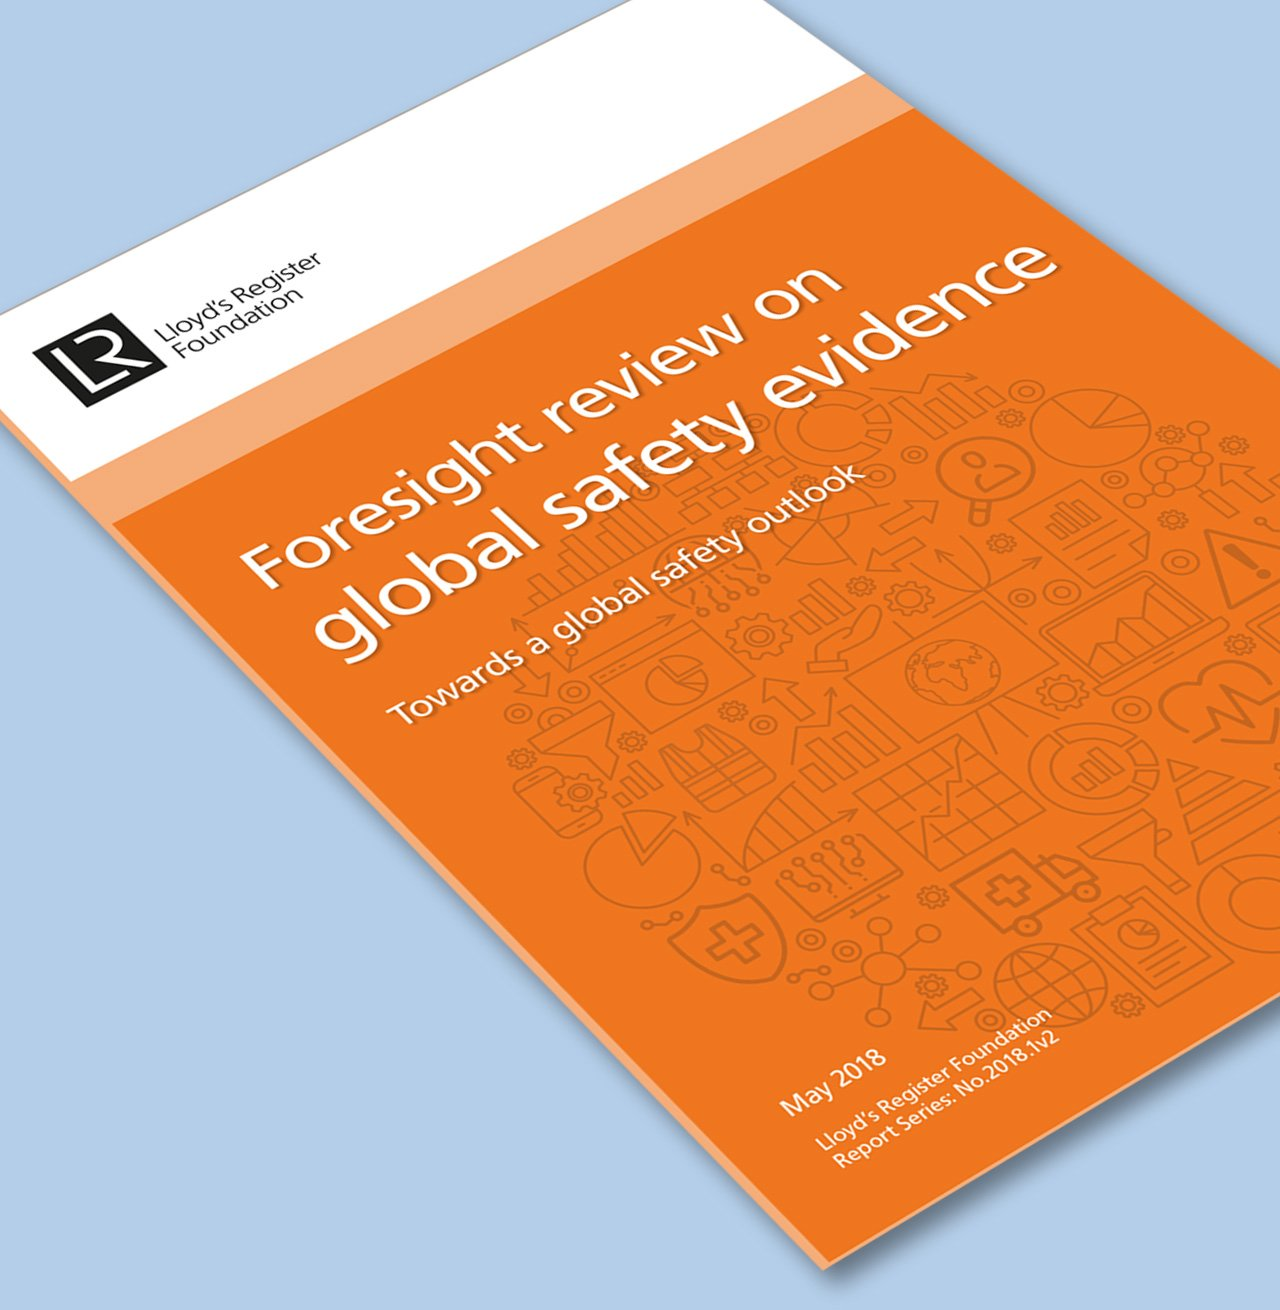 Foresight review on global safety evidence cover